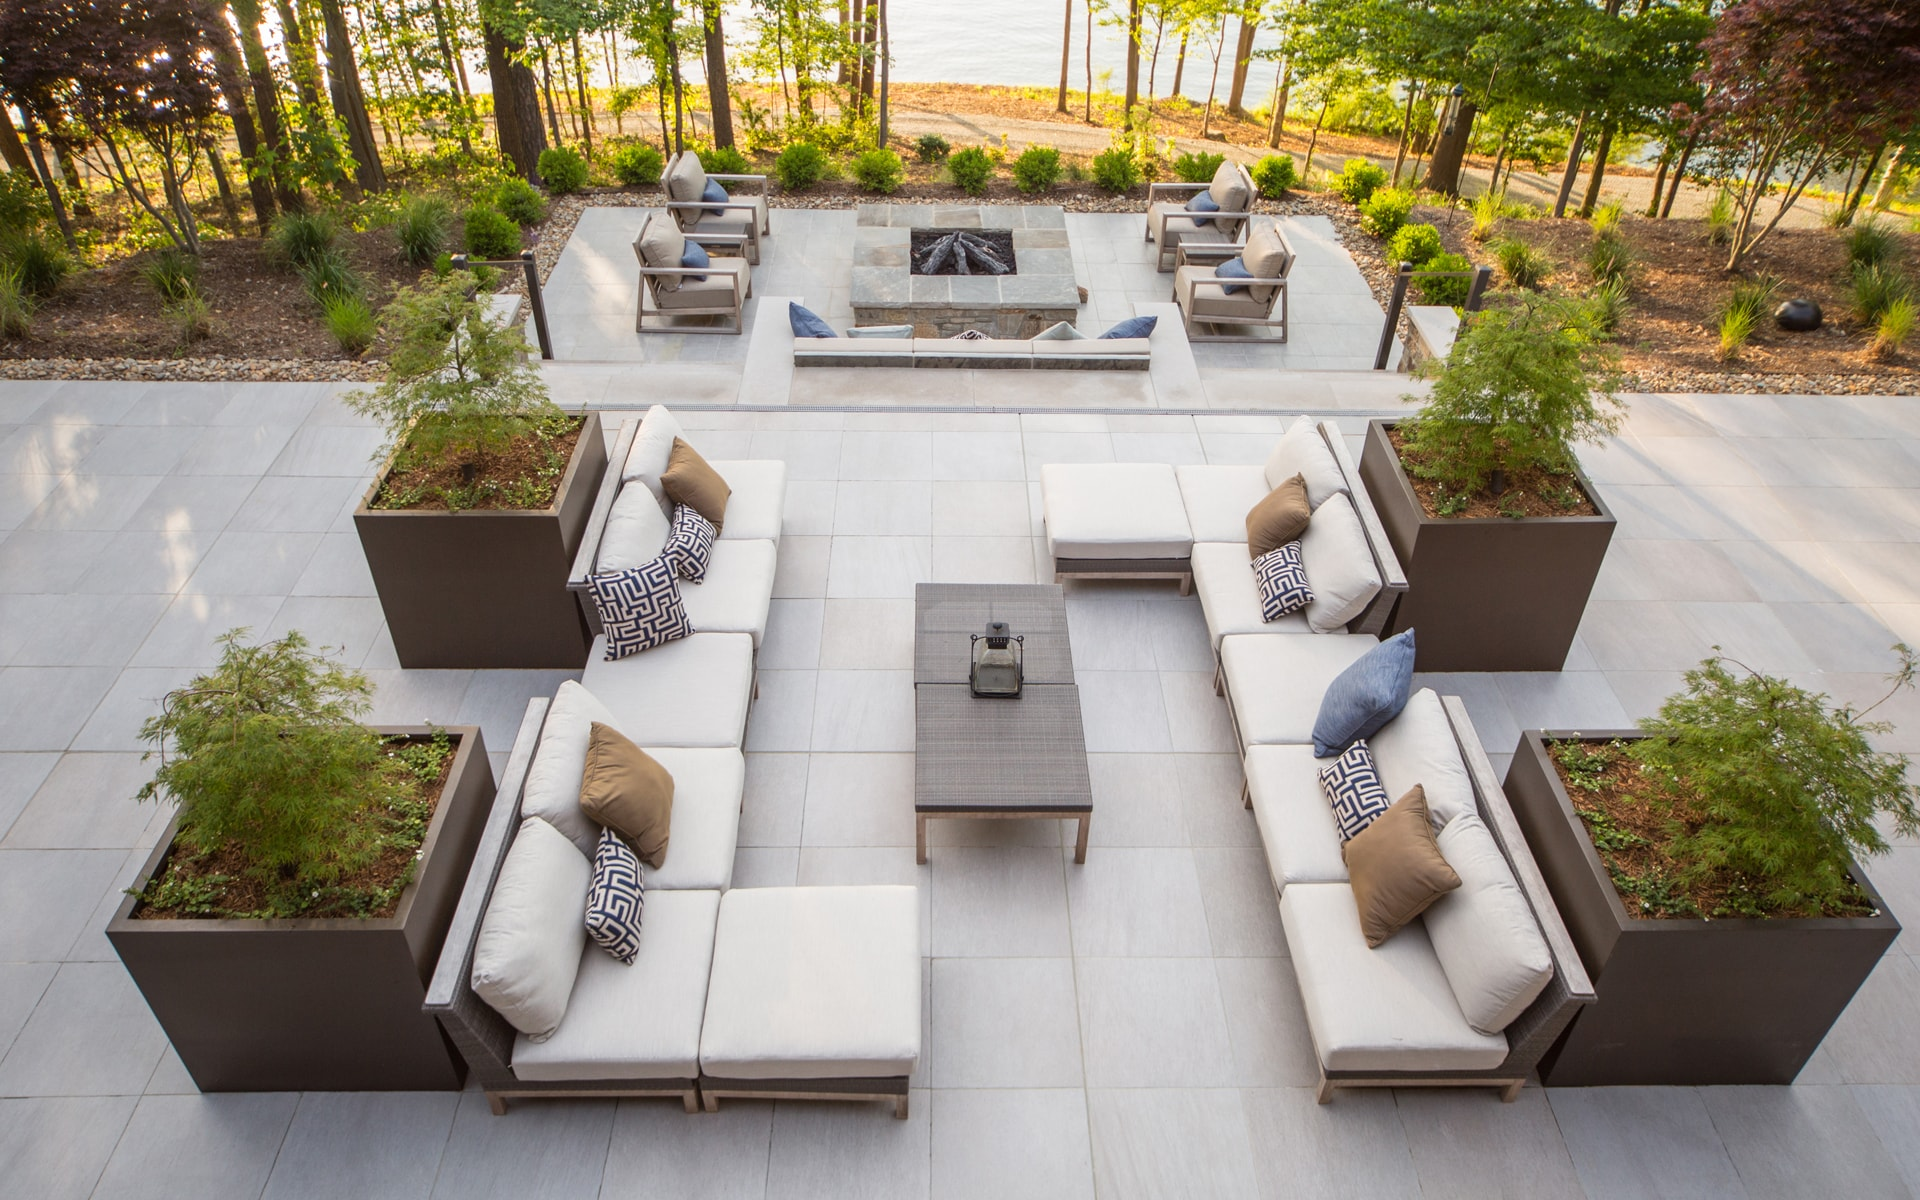 Landscape architecture terrace design in Charlotte, NC